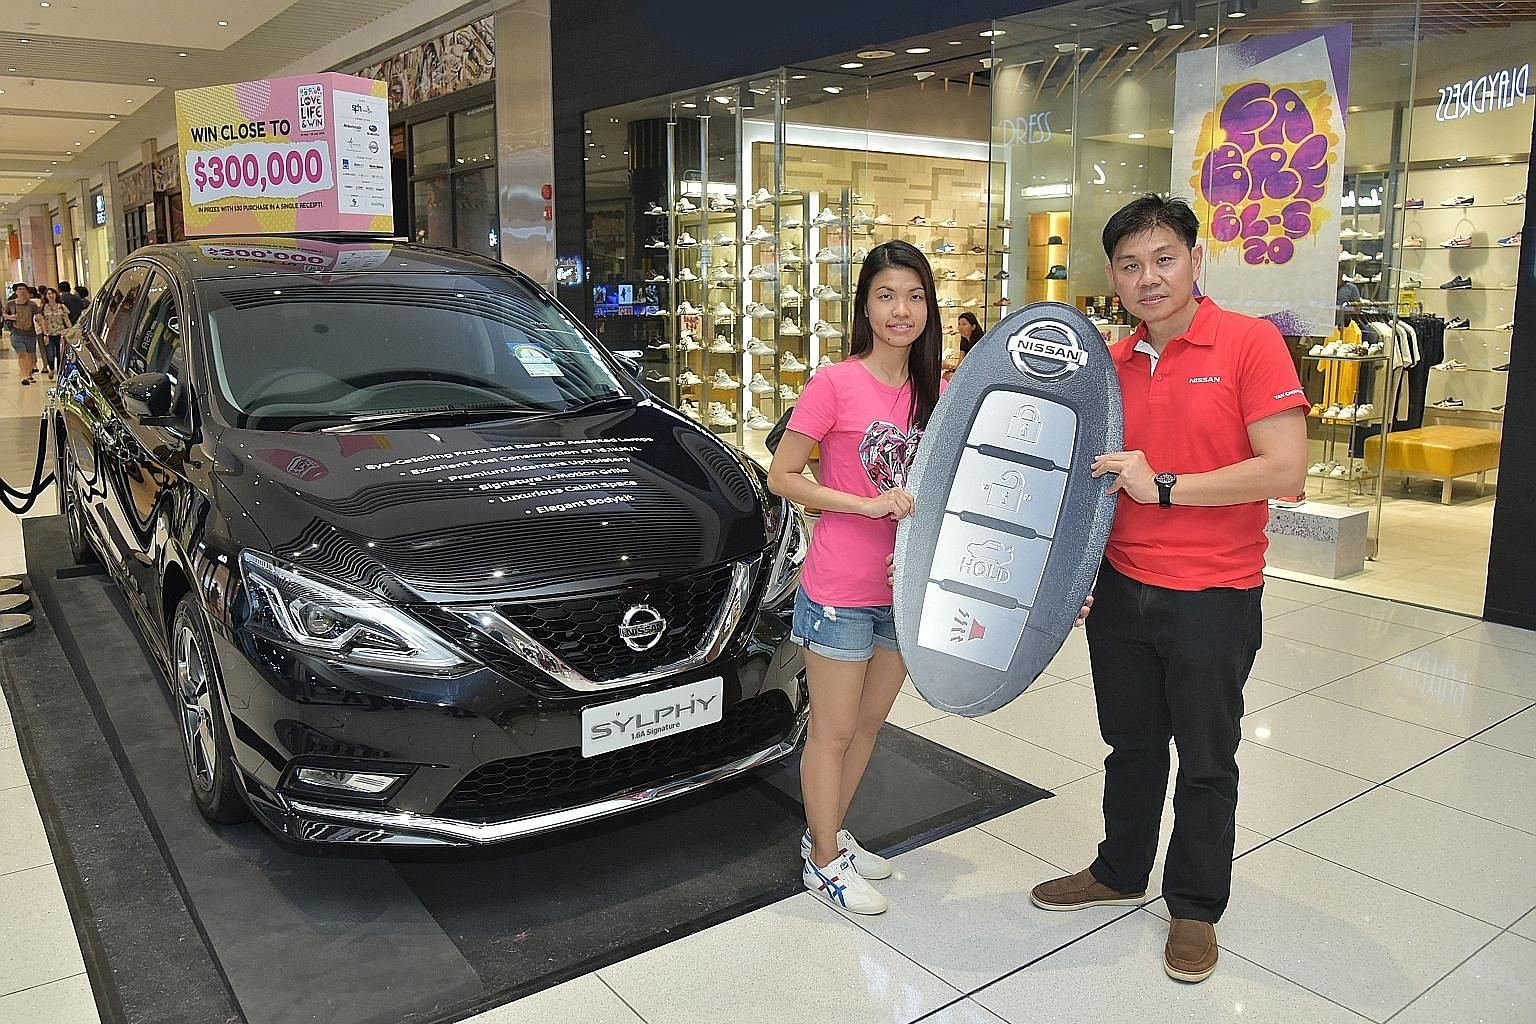 Bank analyst Chia Li Ying does not know how to drive a car. But she may very well have to learn after she won a Nissan Sylphy 1.6 litre sedan as part of the Singapore Press Holdings Love Life & Win Grand Live Draw held yesterday at Suntec City Mall.